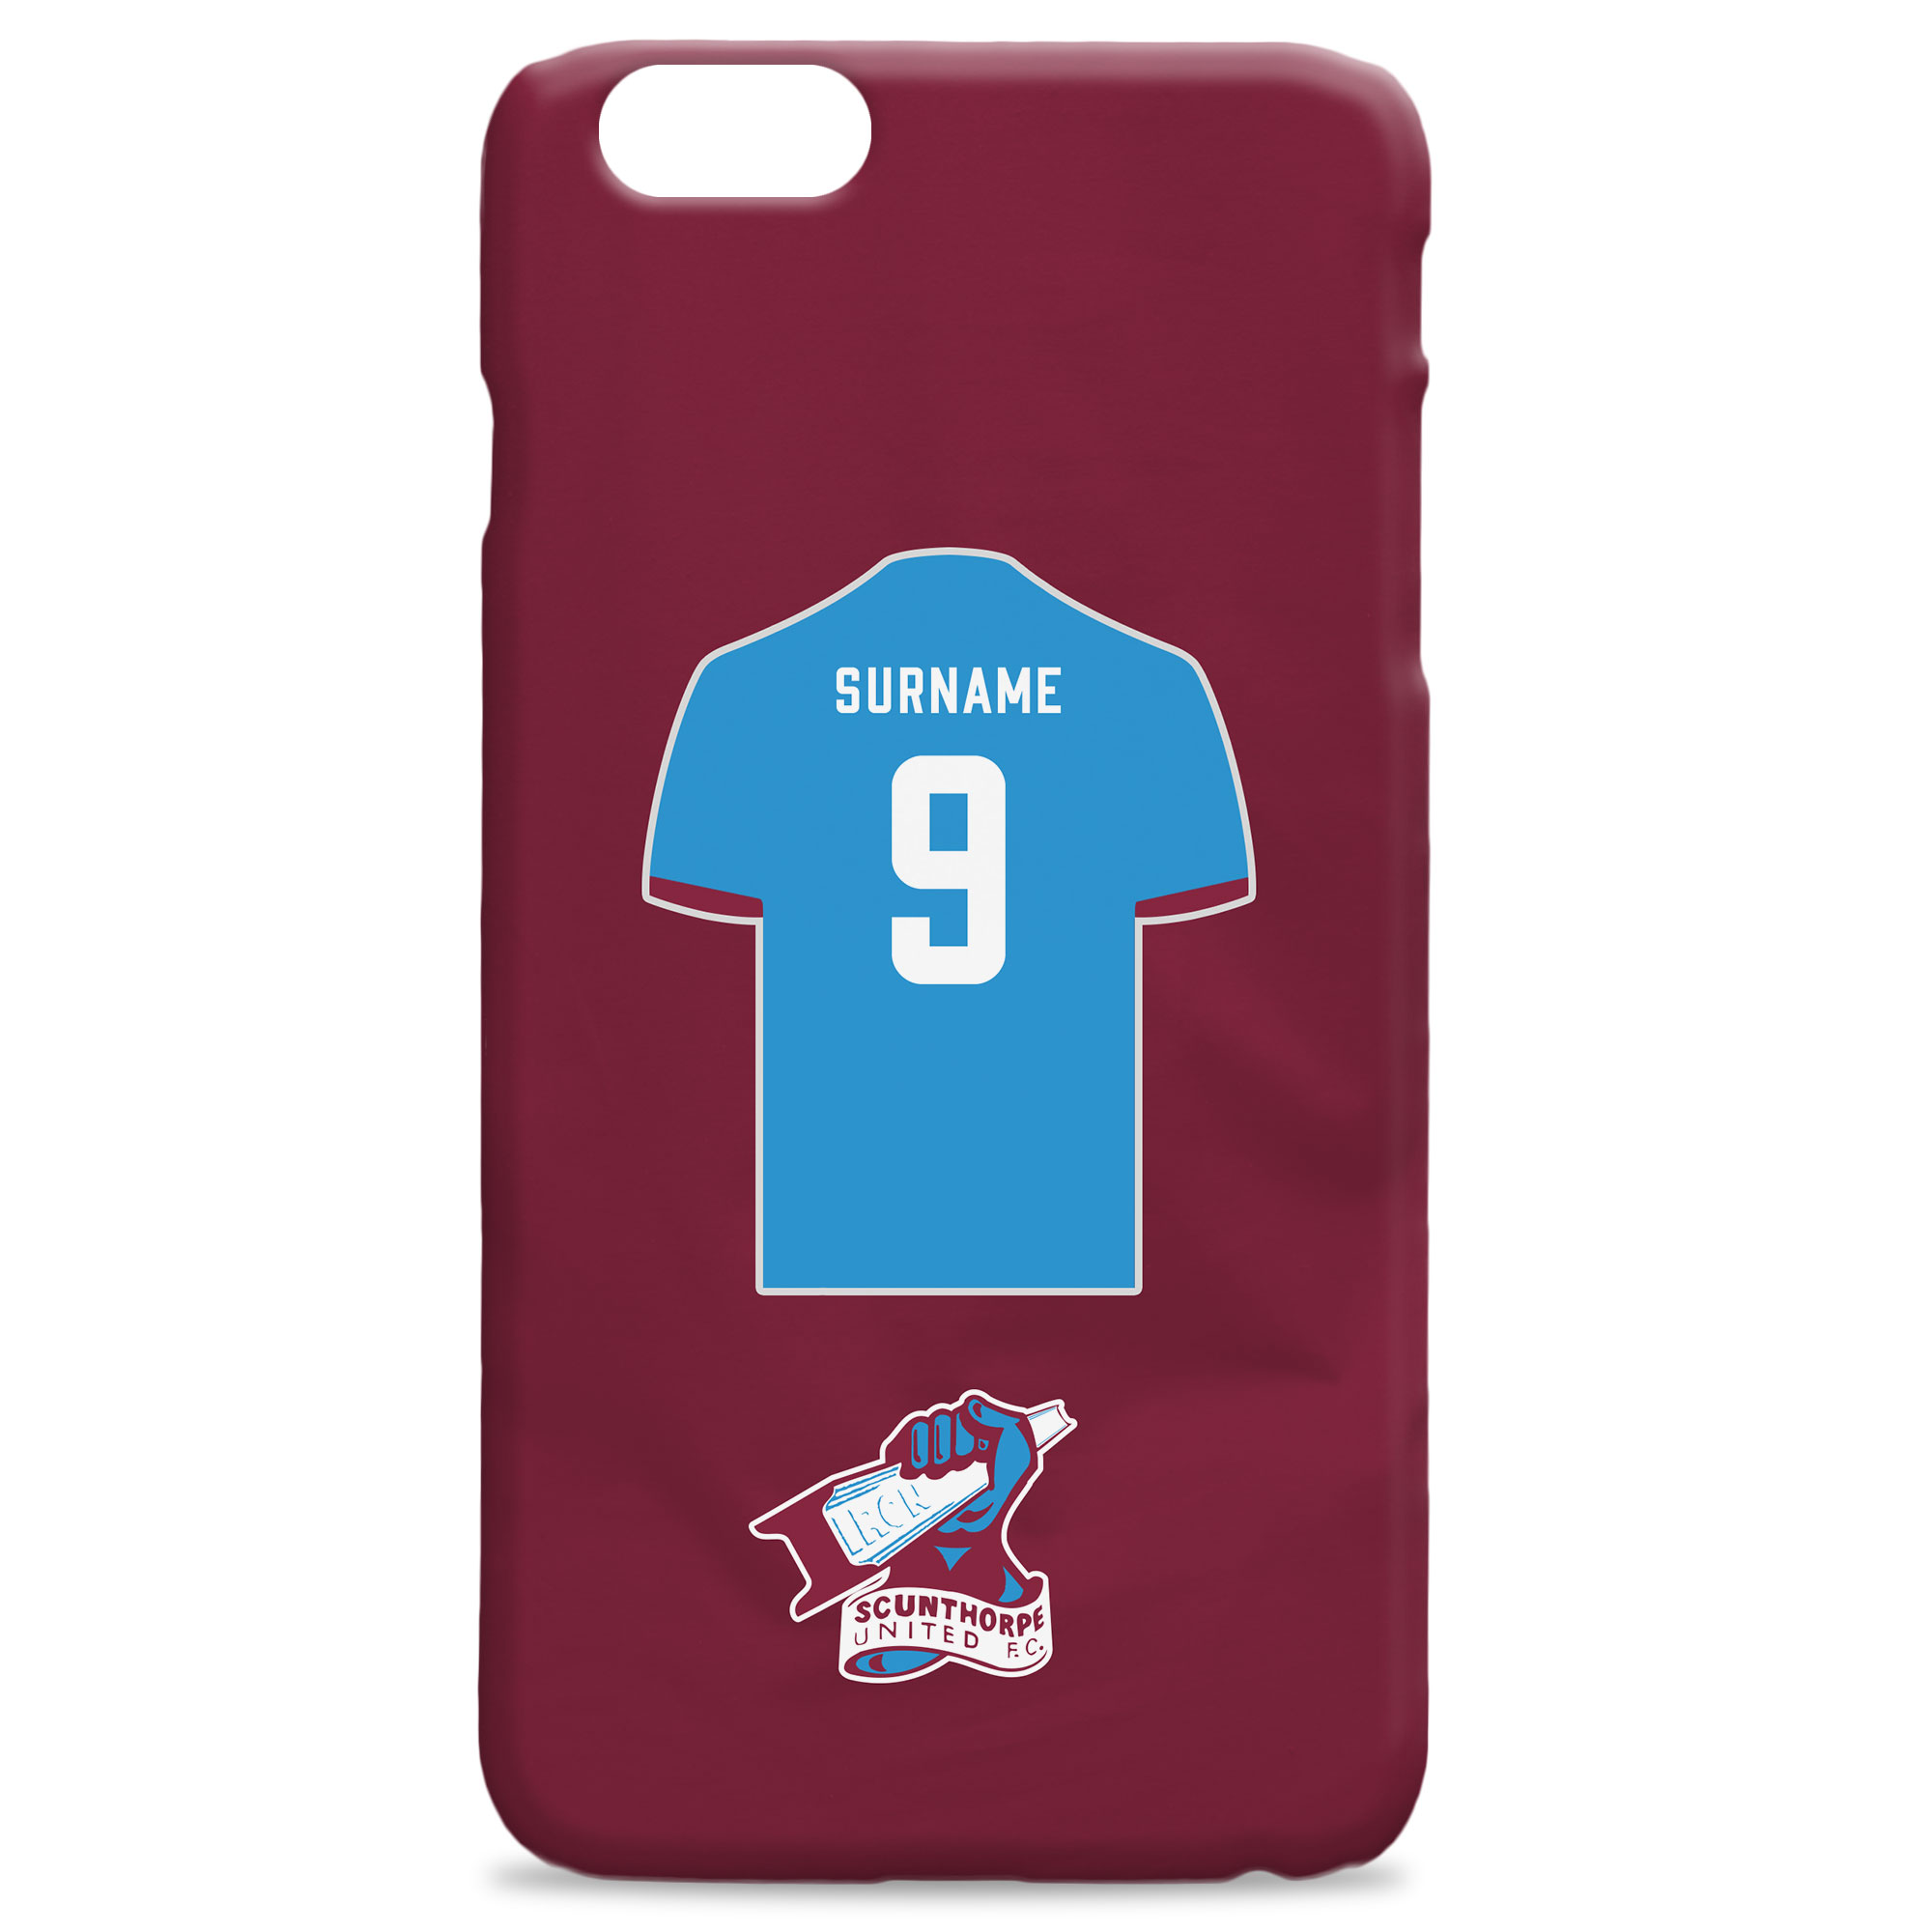 Scunthorpe United FC Shirt Hard Back Phone Case